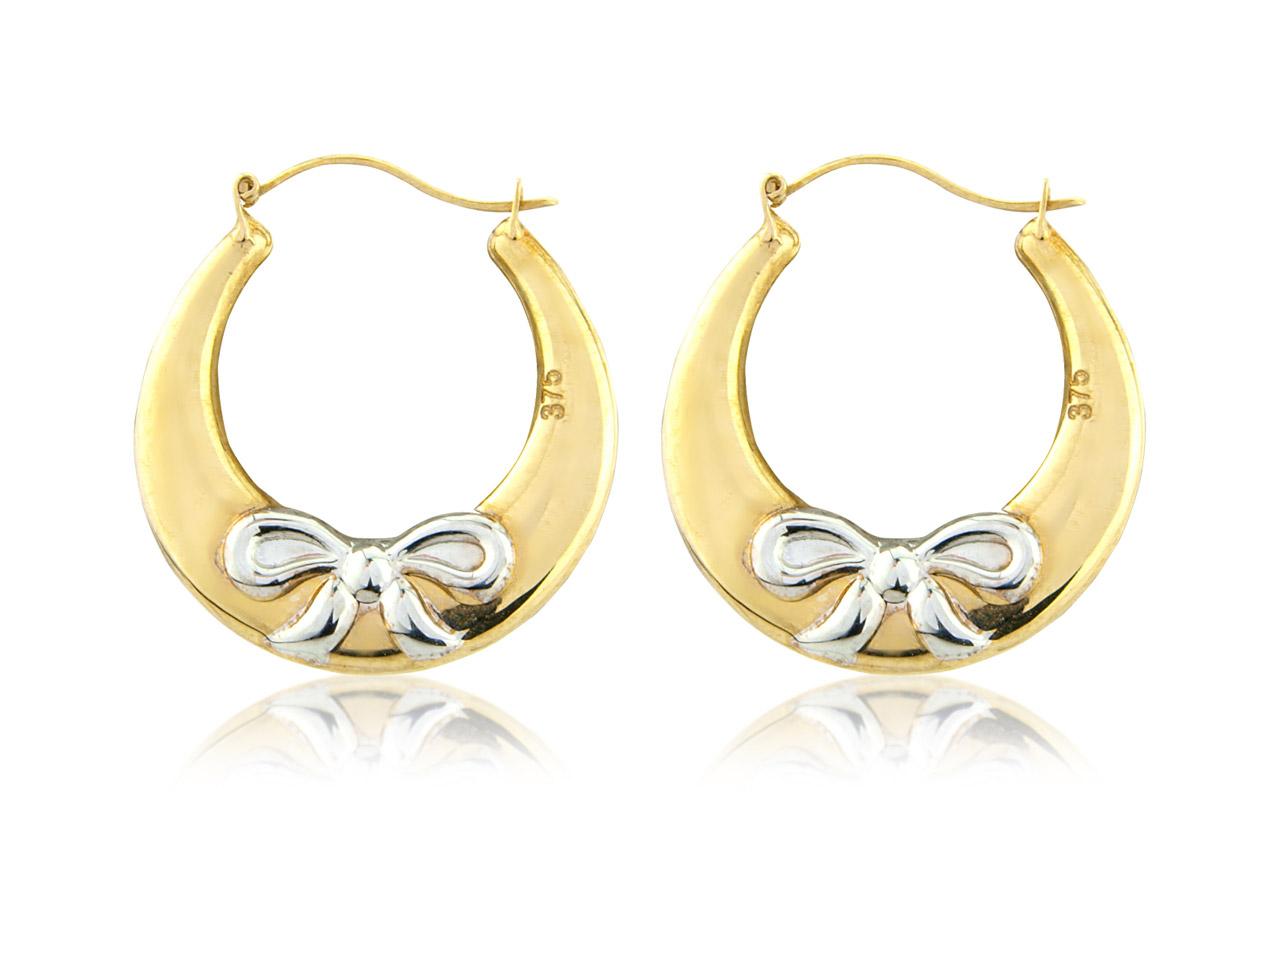 Sterling Silver Gold Plated Creole Earrings With Bow Detail